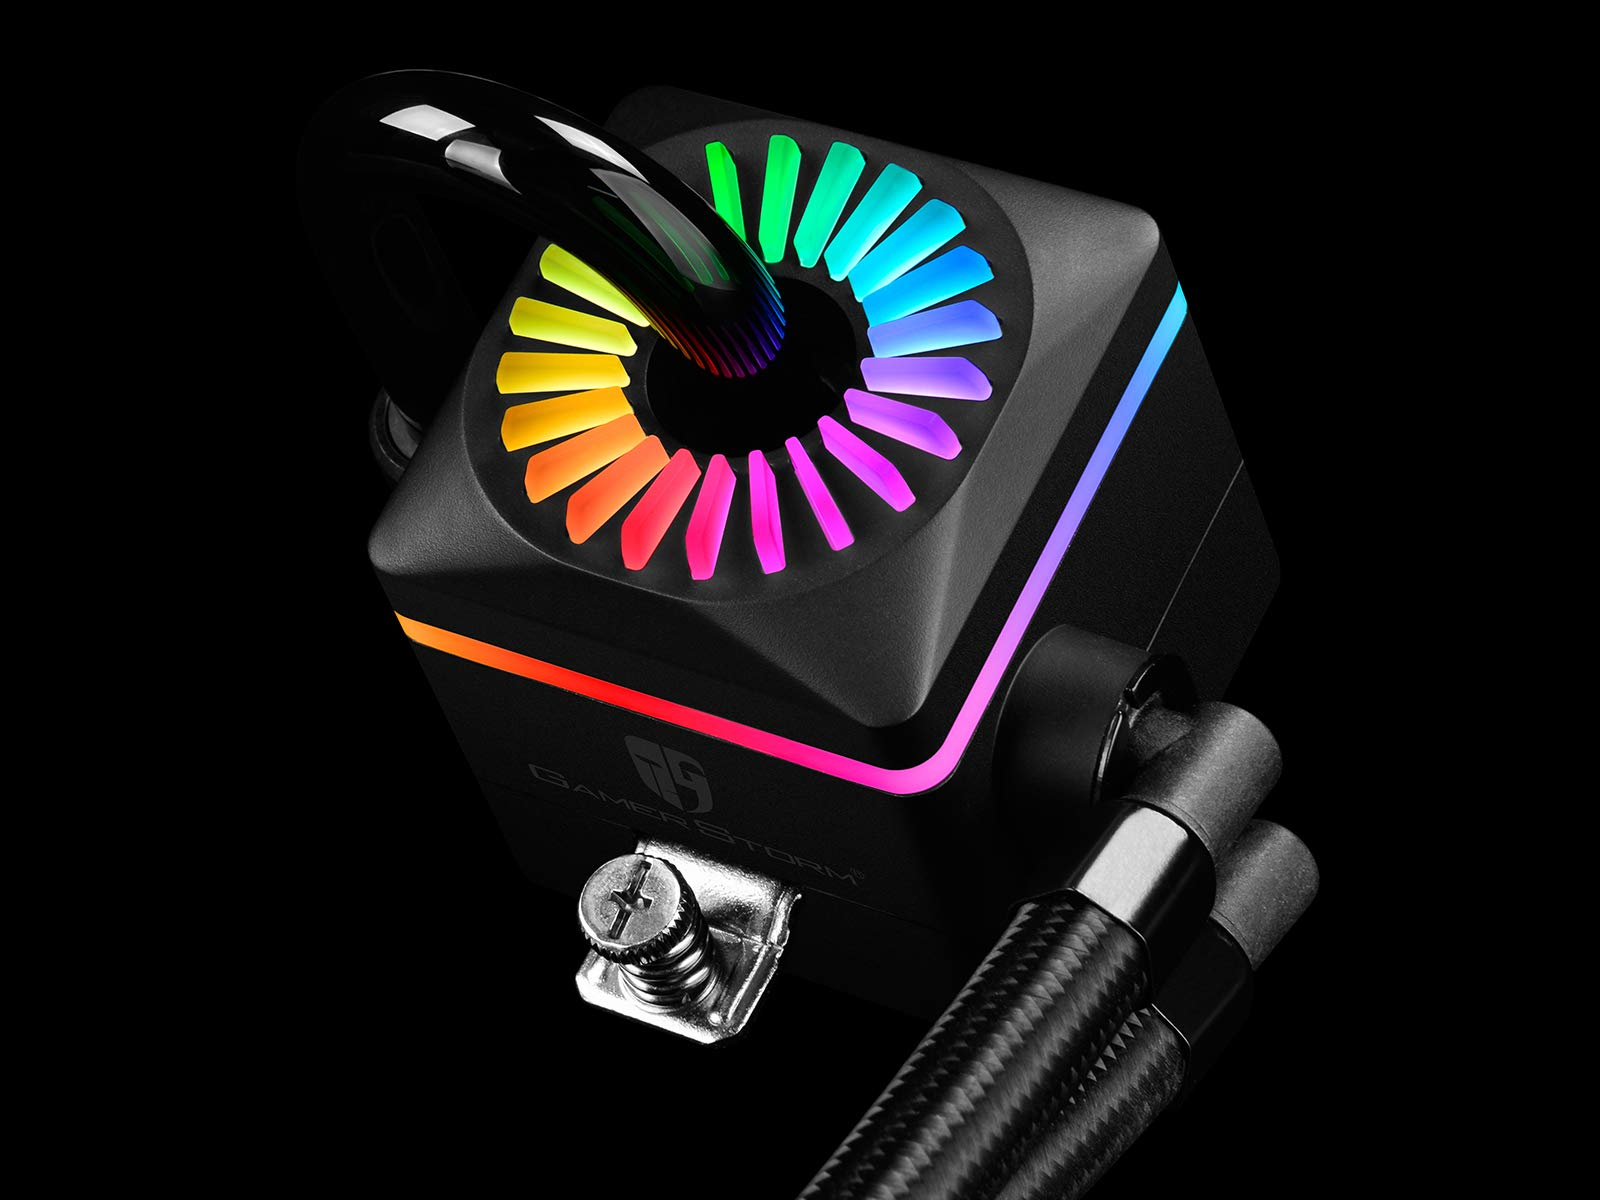 DEEPCOOL Captain 240PRO Addressable RGB AIO CPU Liquid Cooler, Cable Controller and 5V ADD RGB 3-Pin Motherboard Control, Intel 115X/2066 and AMD TR4/AM4 Compatible, 3-Year Warranty by DEEPCOOL (Image #3)